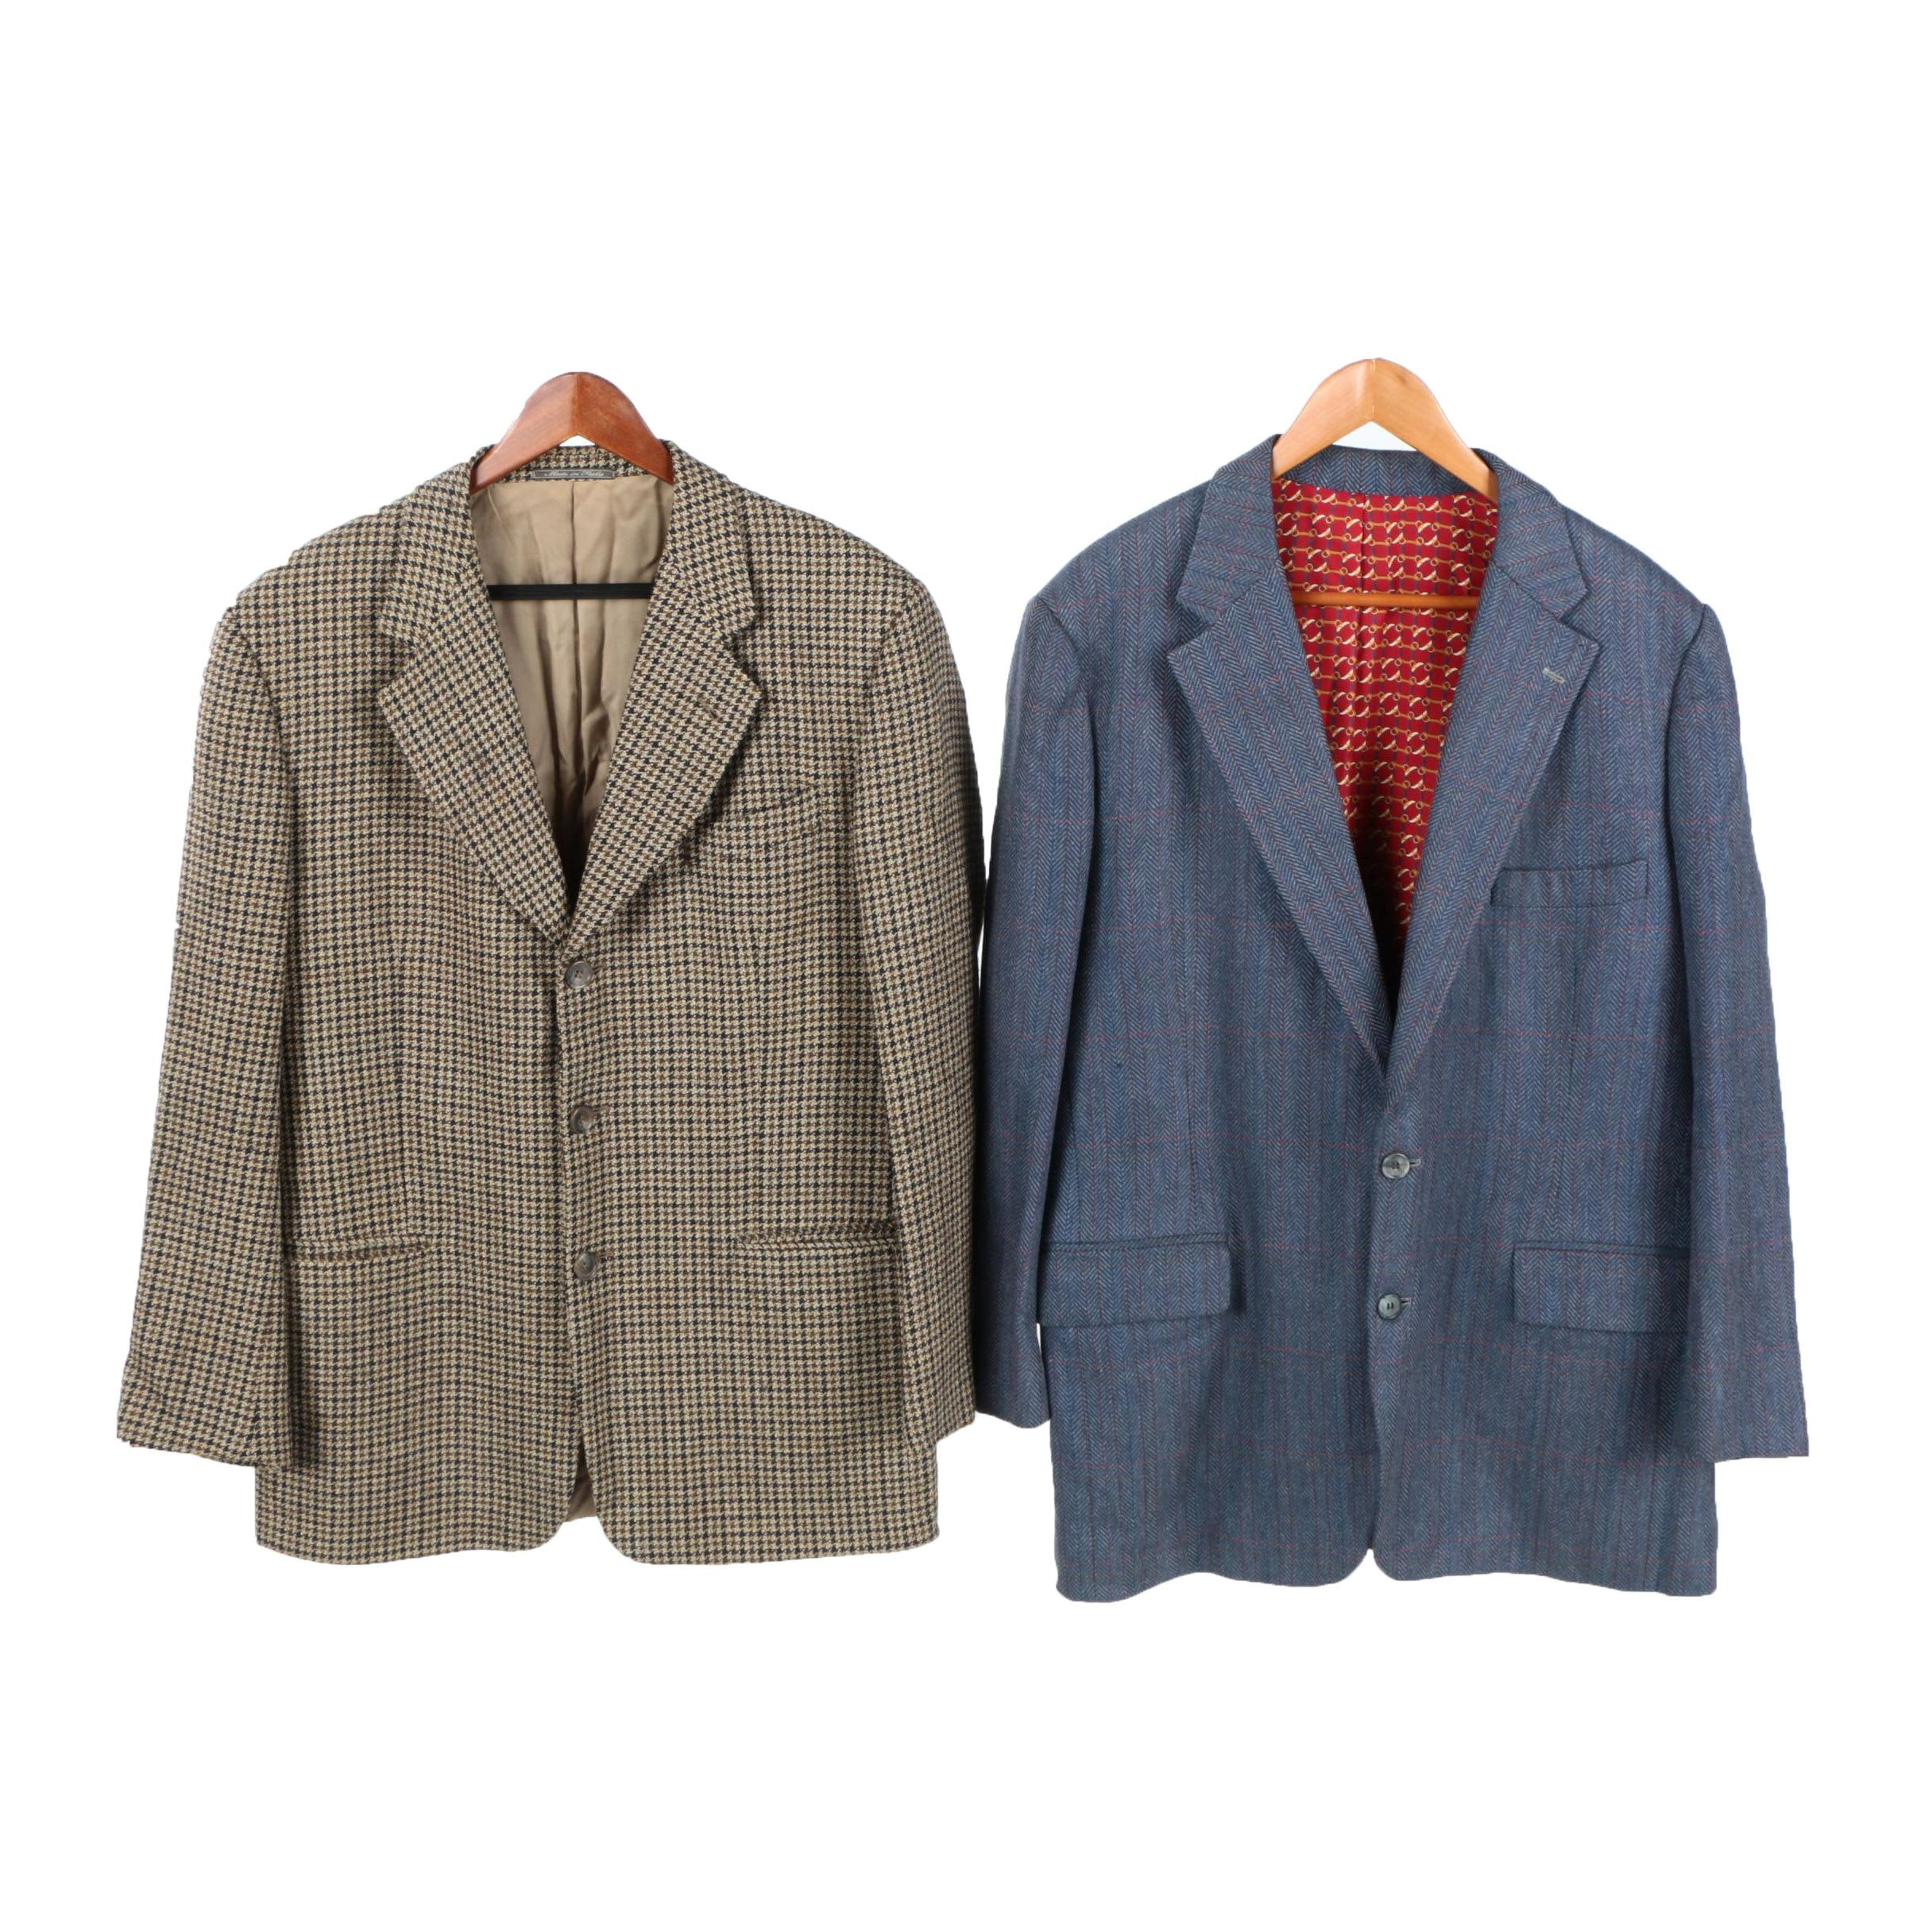 Barneys New York Houndstooth Style Suit Jacket with Another Jacket